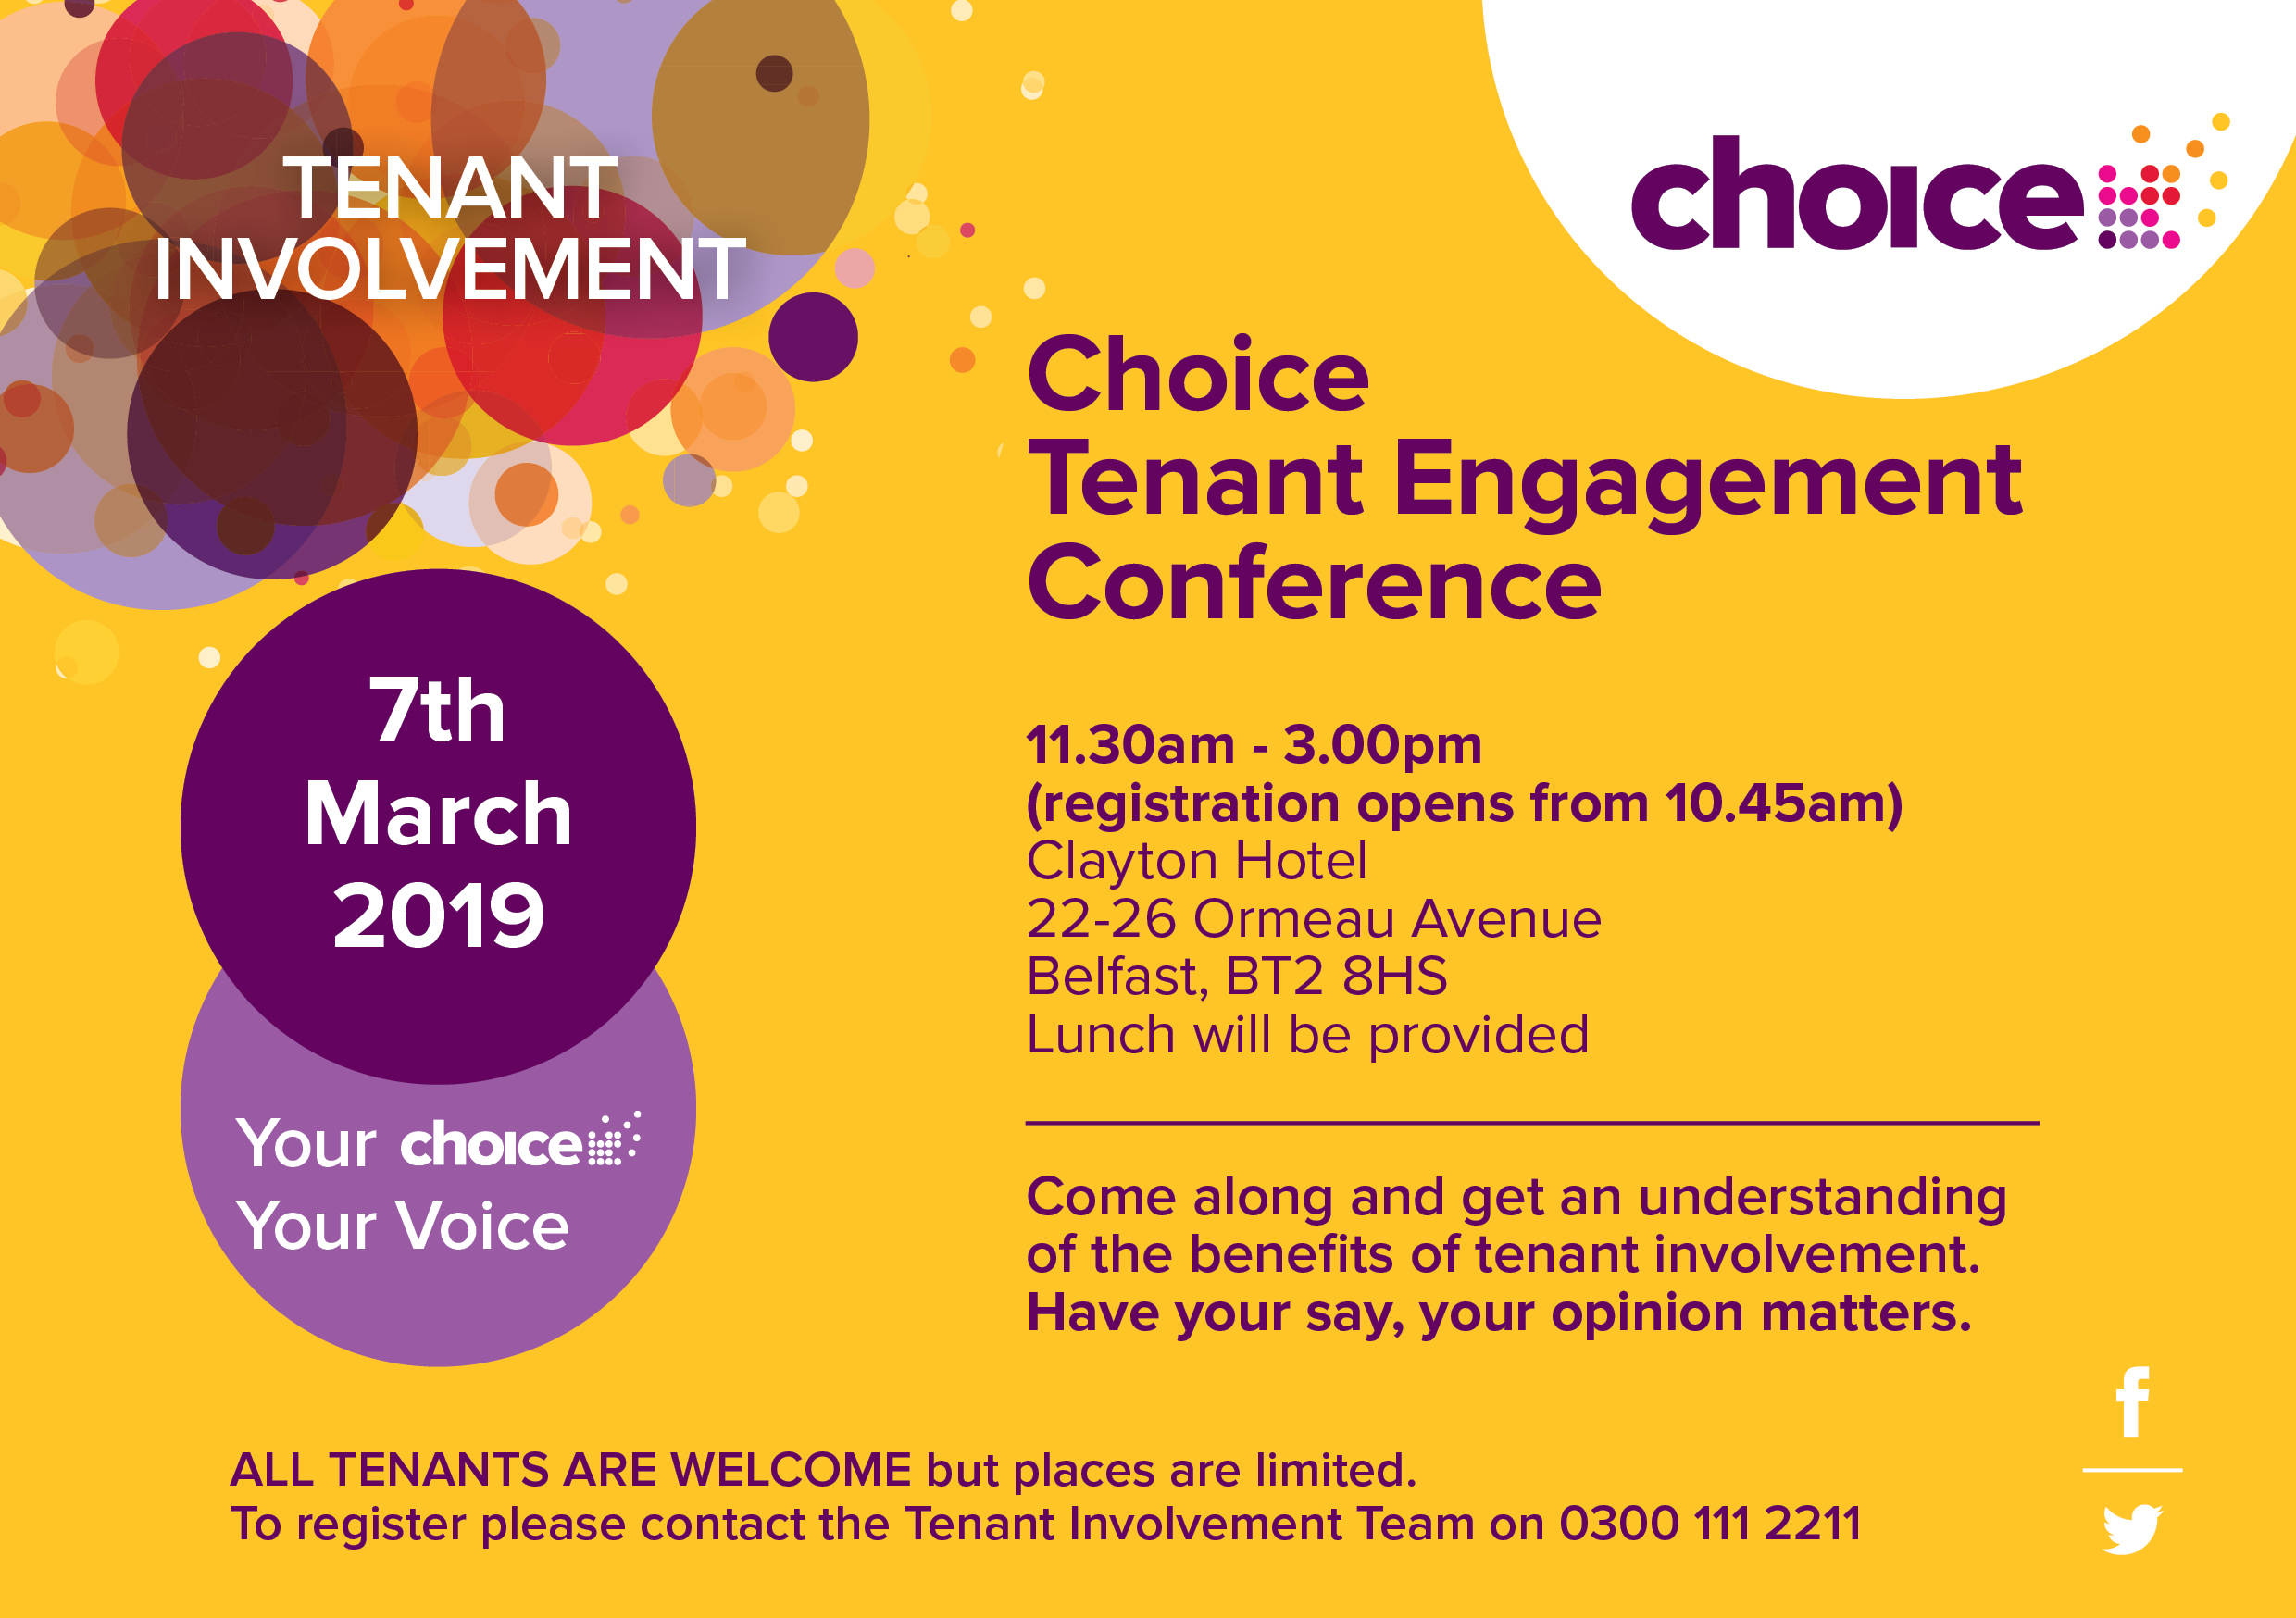 Choice Tenant Engagement Conference